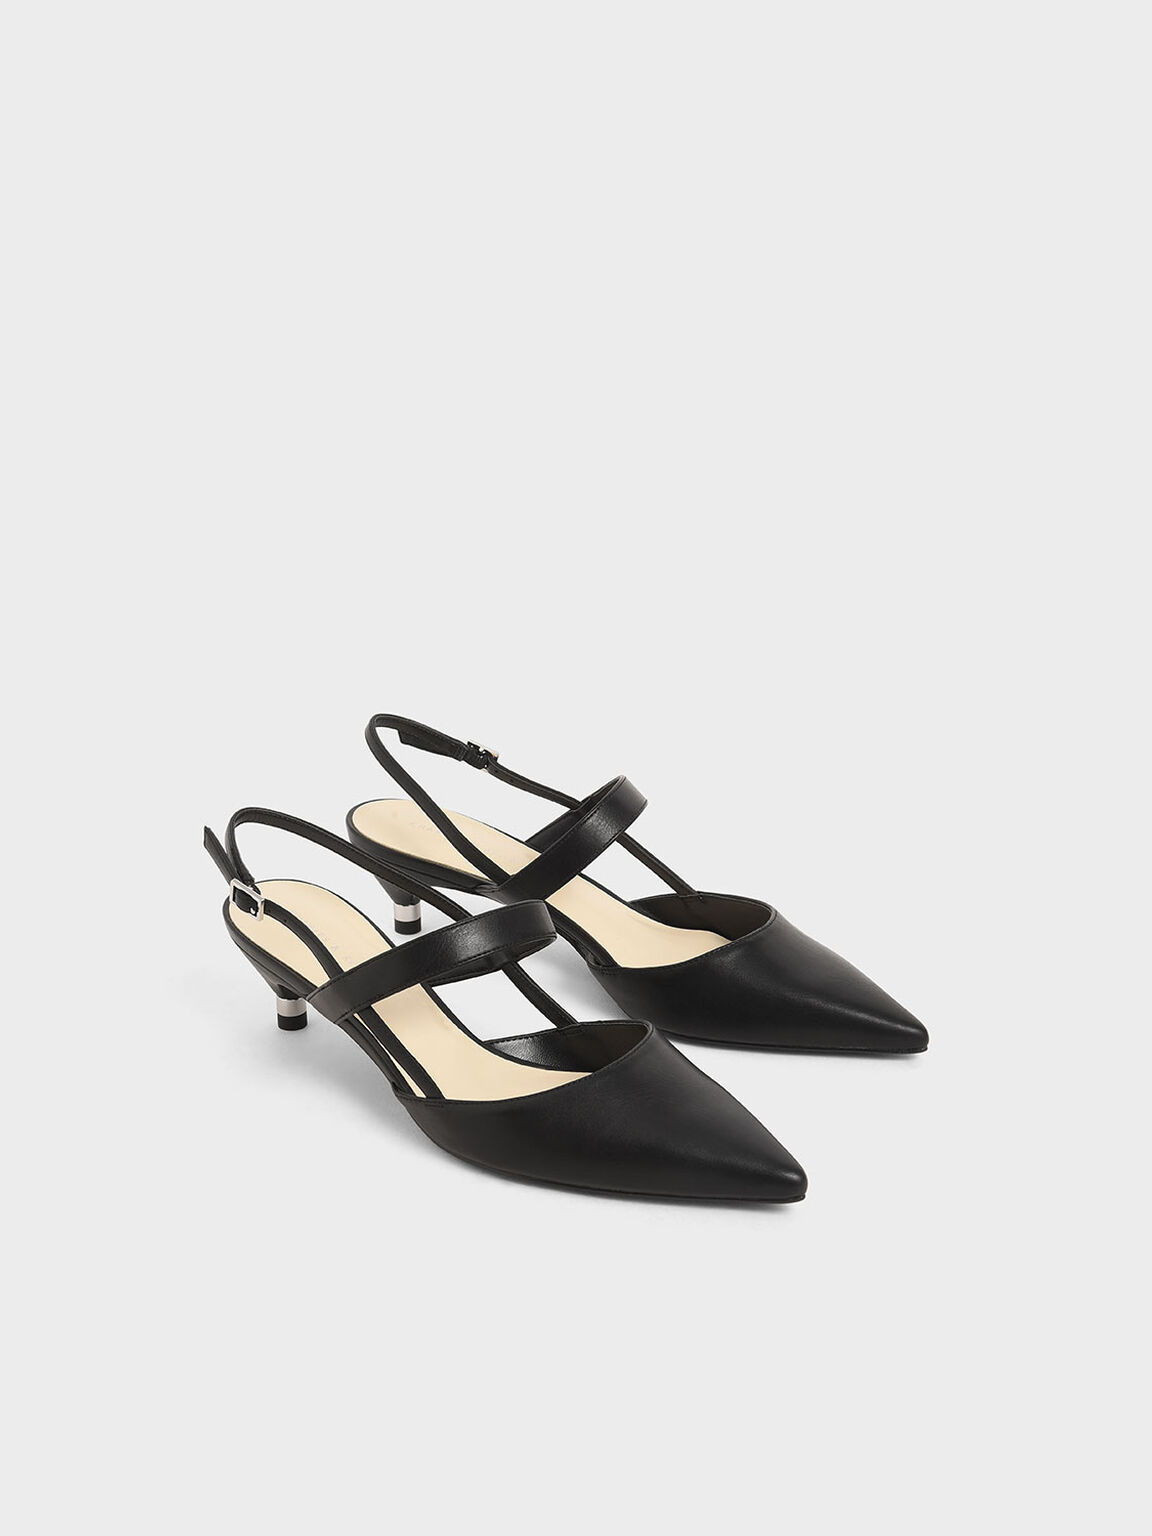 Slingback Kitten Heel Pumps, Black, hi-res